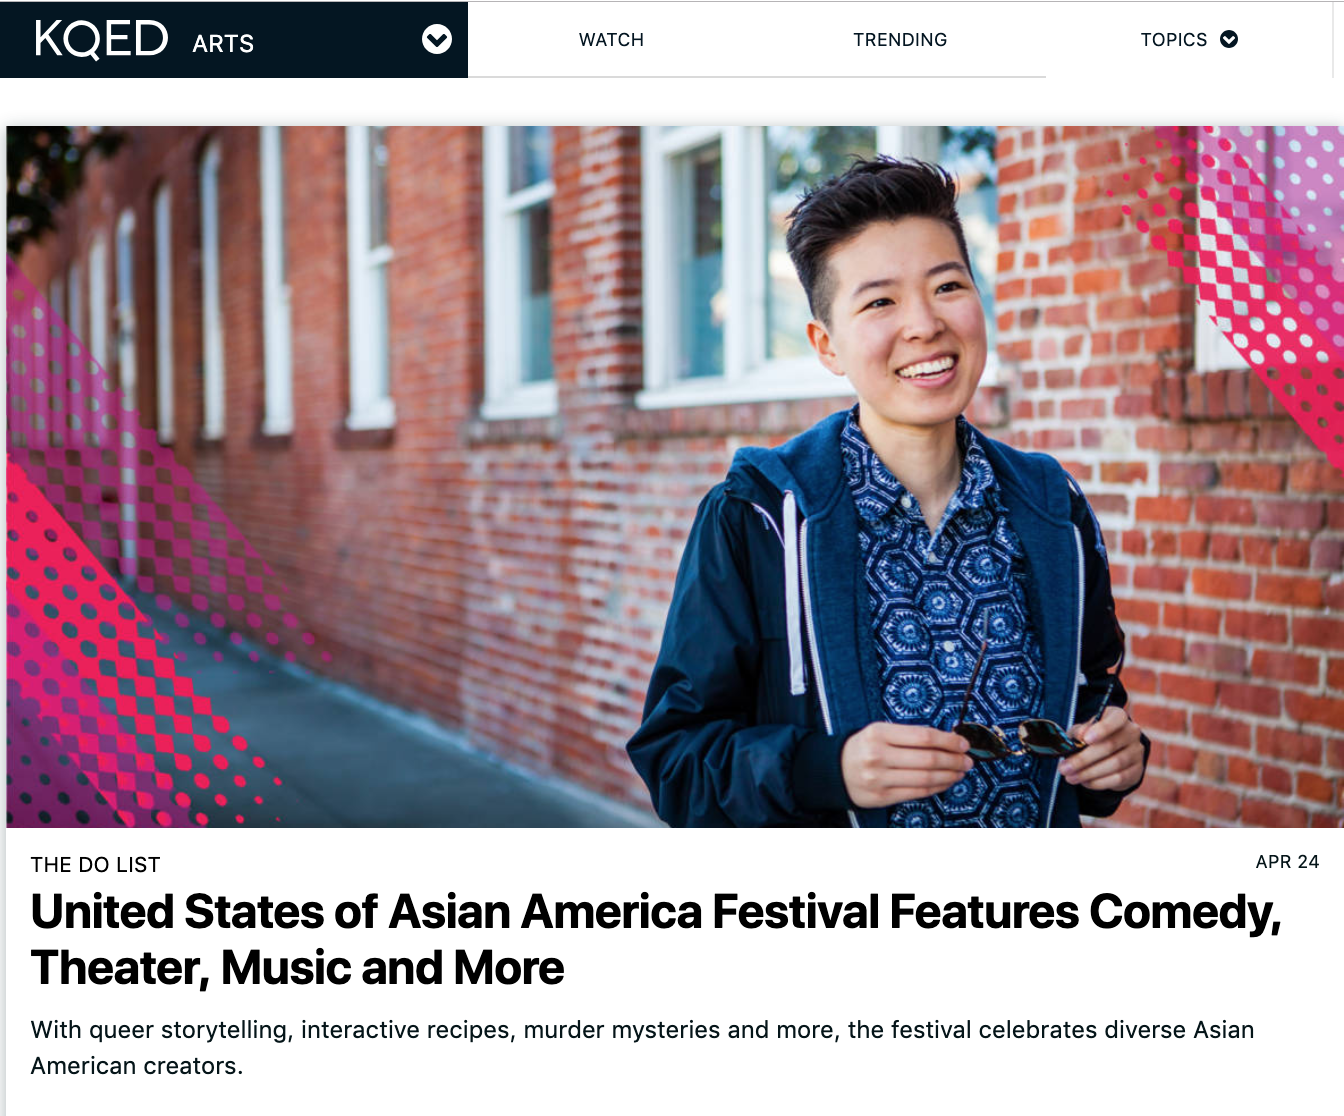 Jenna Peng secured this  KQED Arts feature for the 22nd Annual United States of Asian America Festival  through her internship with PapaLoDown and API Cultural Center.